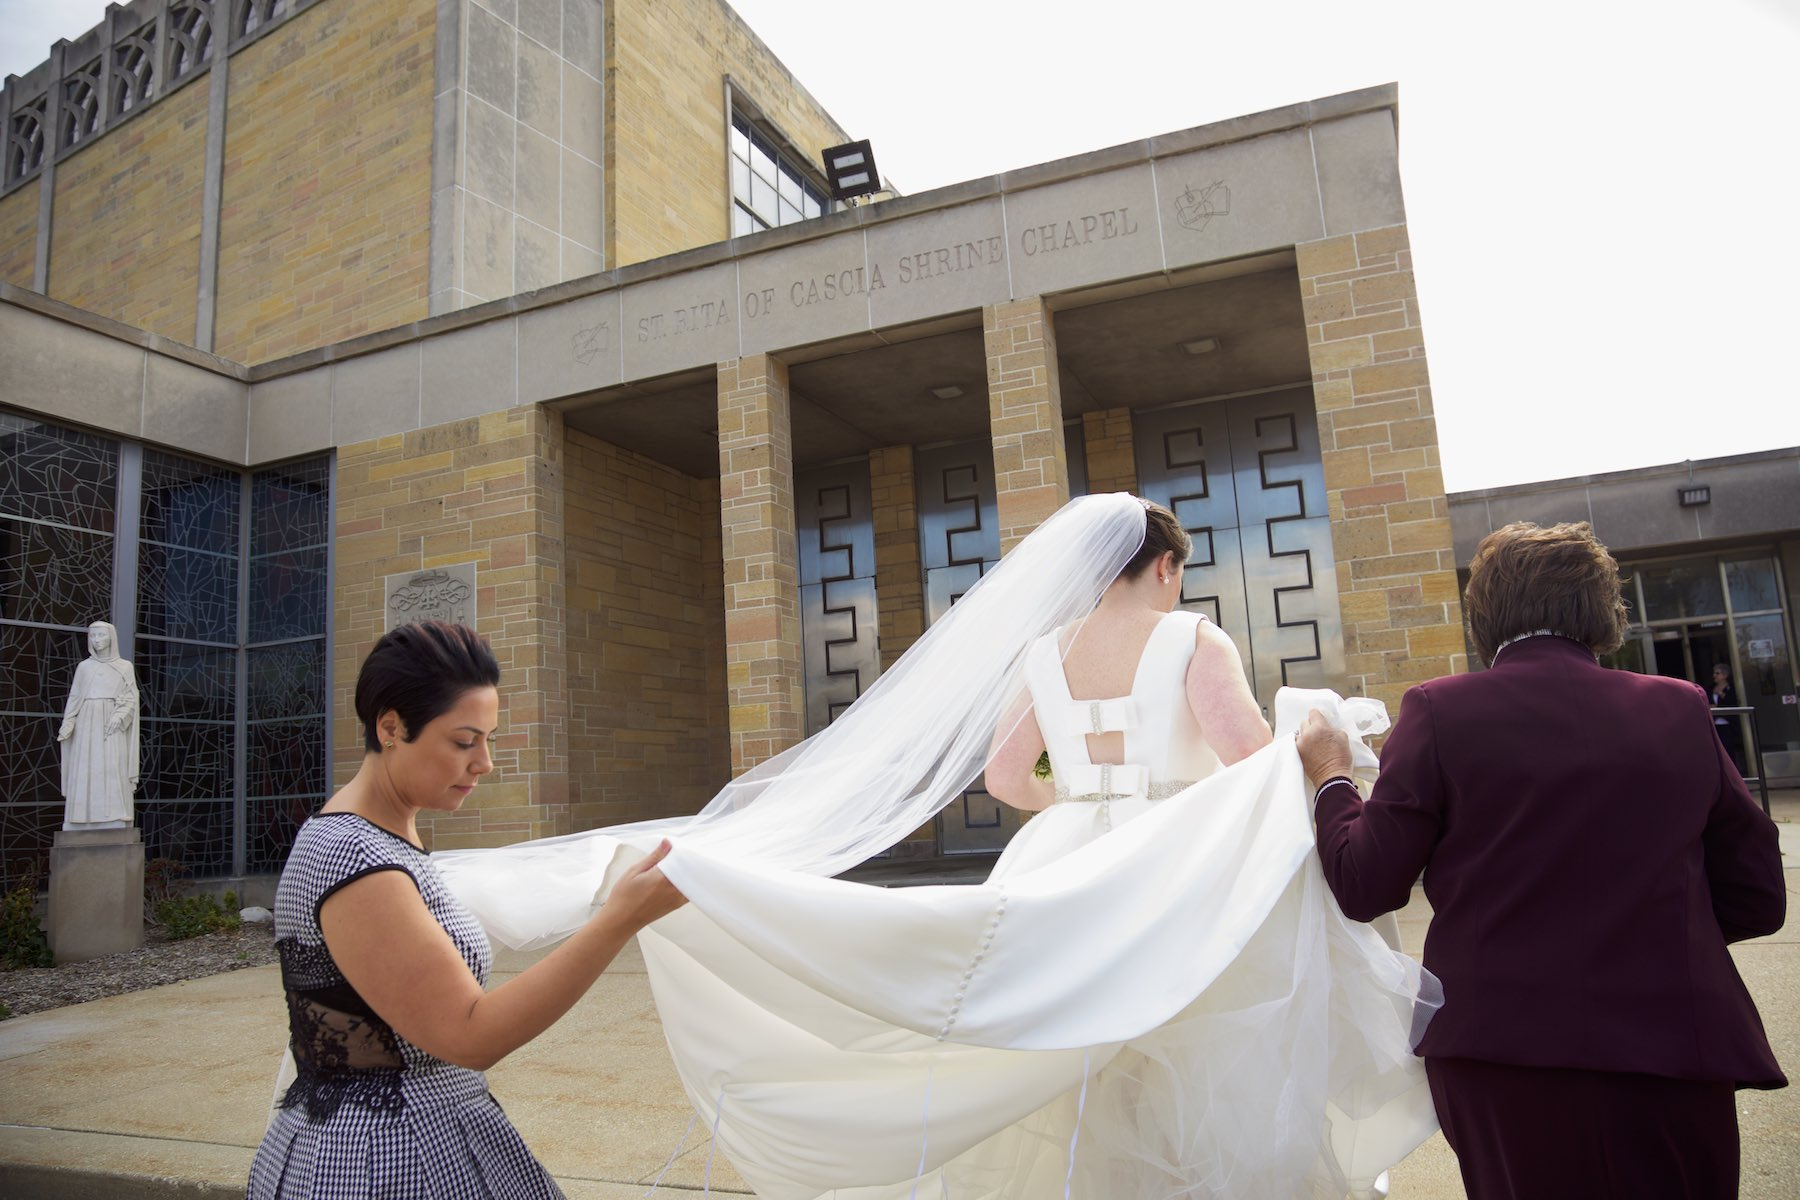 Elizabeth arrives at St. Rita of Cascia Shrine Chapel in Chicago for the ceremony. Wedding photography by Steve & Tiffany Warmowski